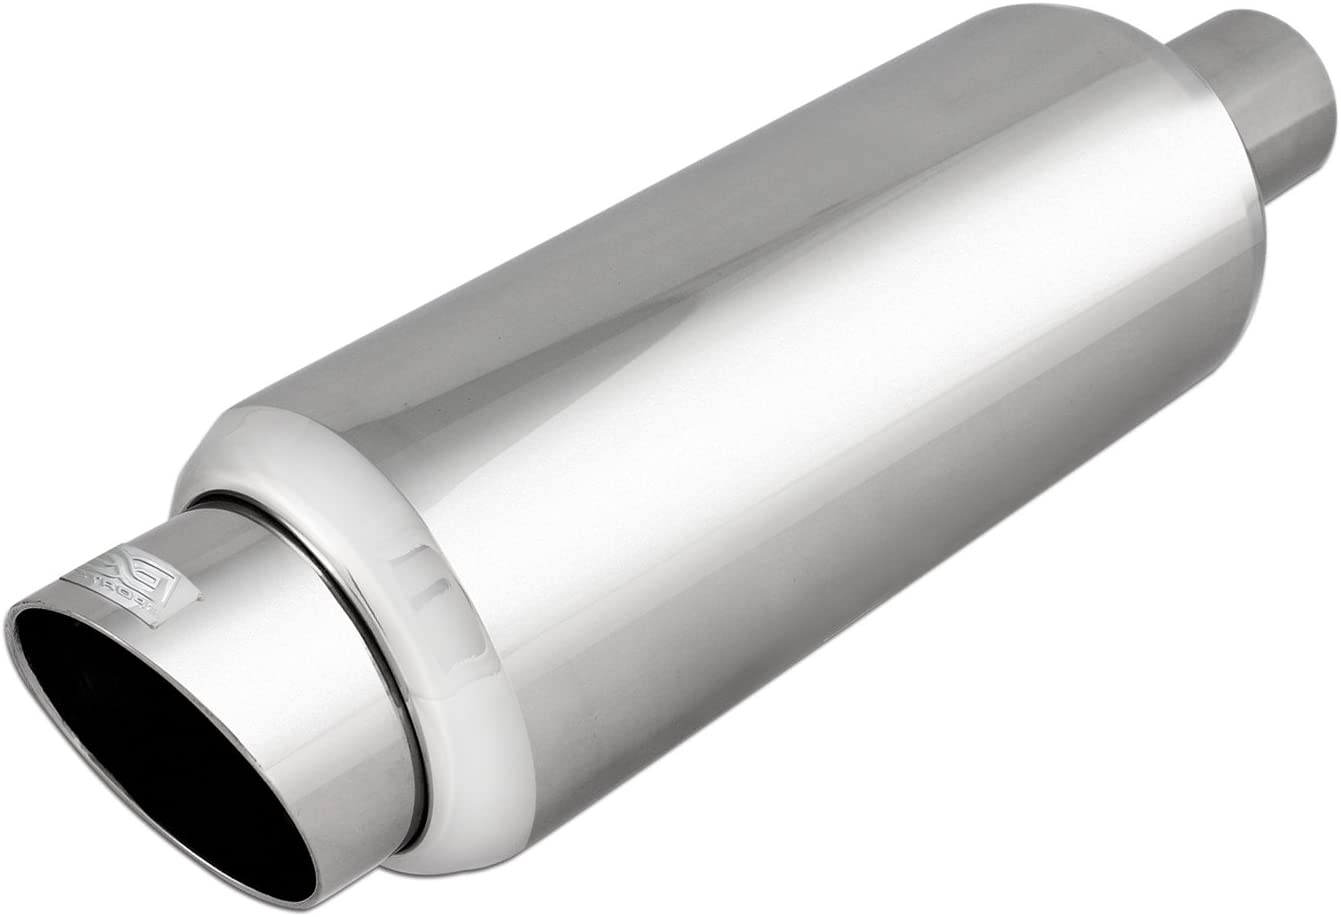 Double-barrel Pipe Exhaust Replacement Accessories Tip Reliable High Quality